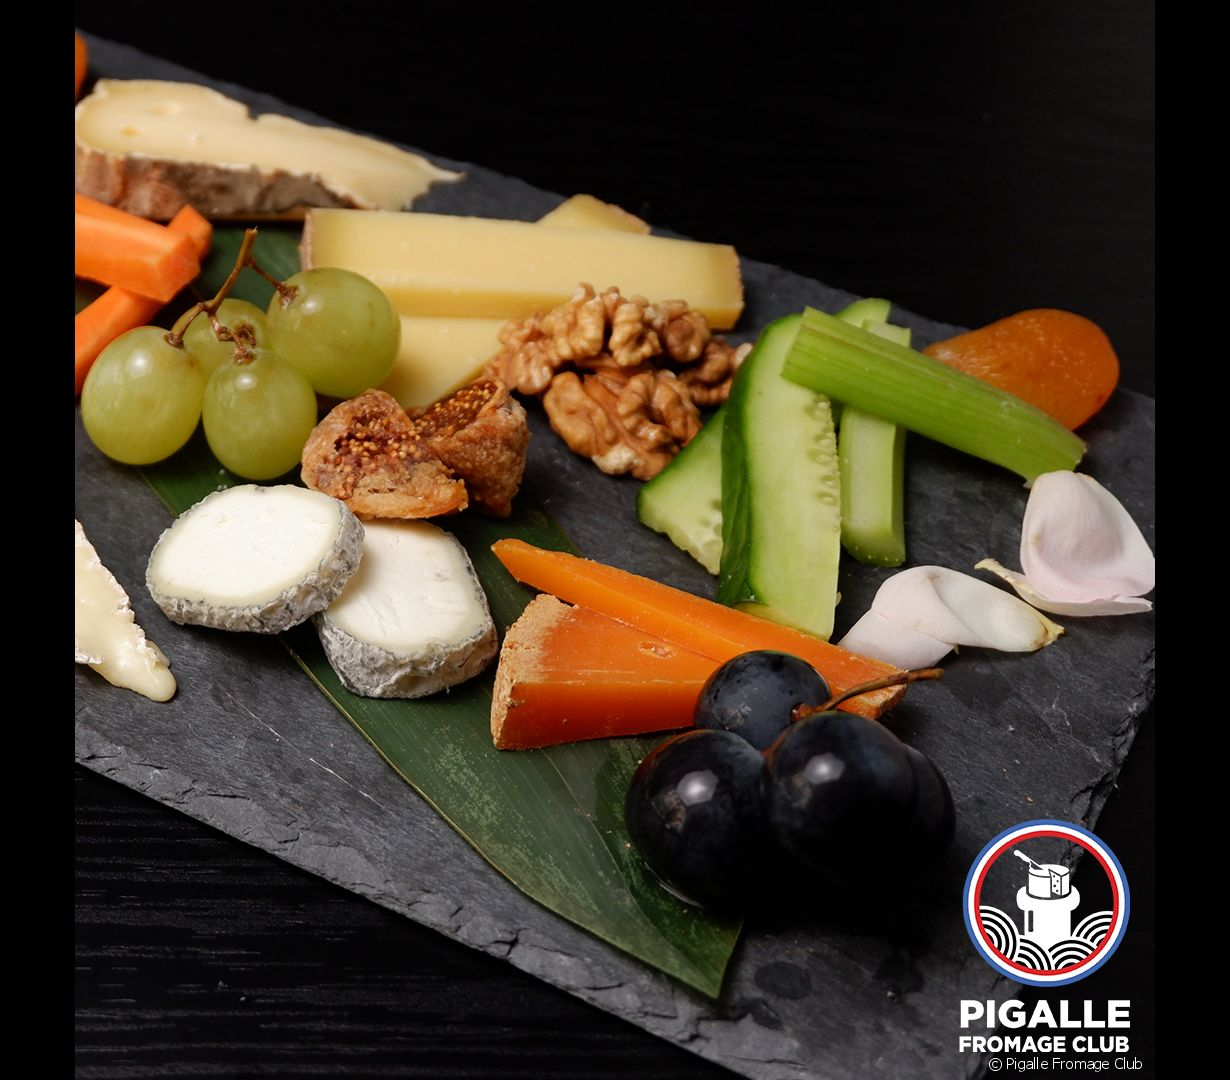 Pigalle Fromage Club, 35 Rue Jean-Baptiste Pigalle, 75009 Paris - Photo 6